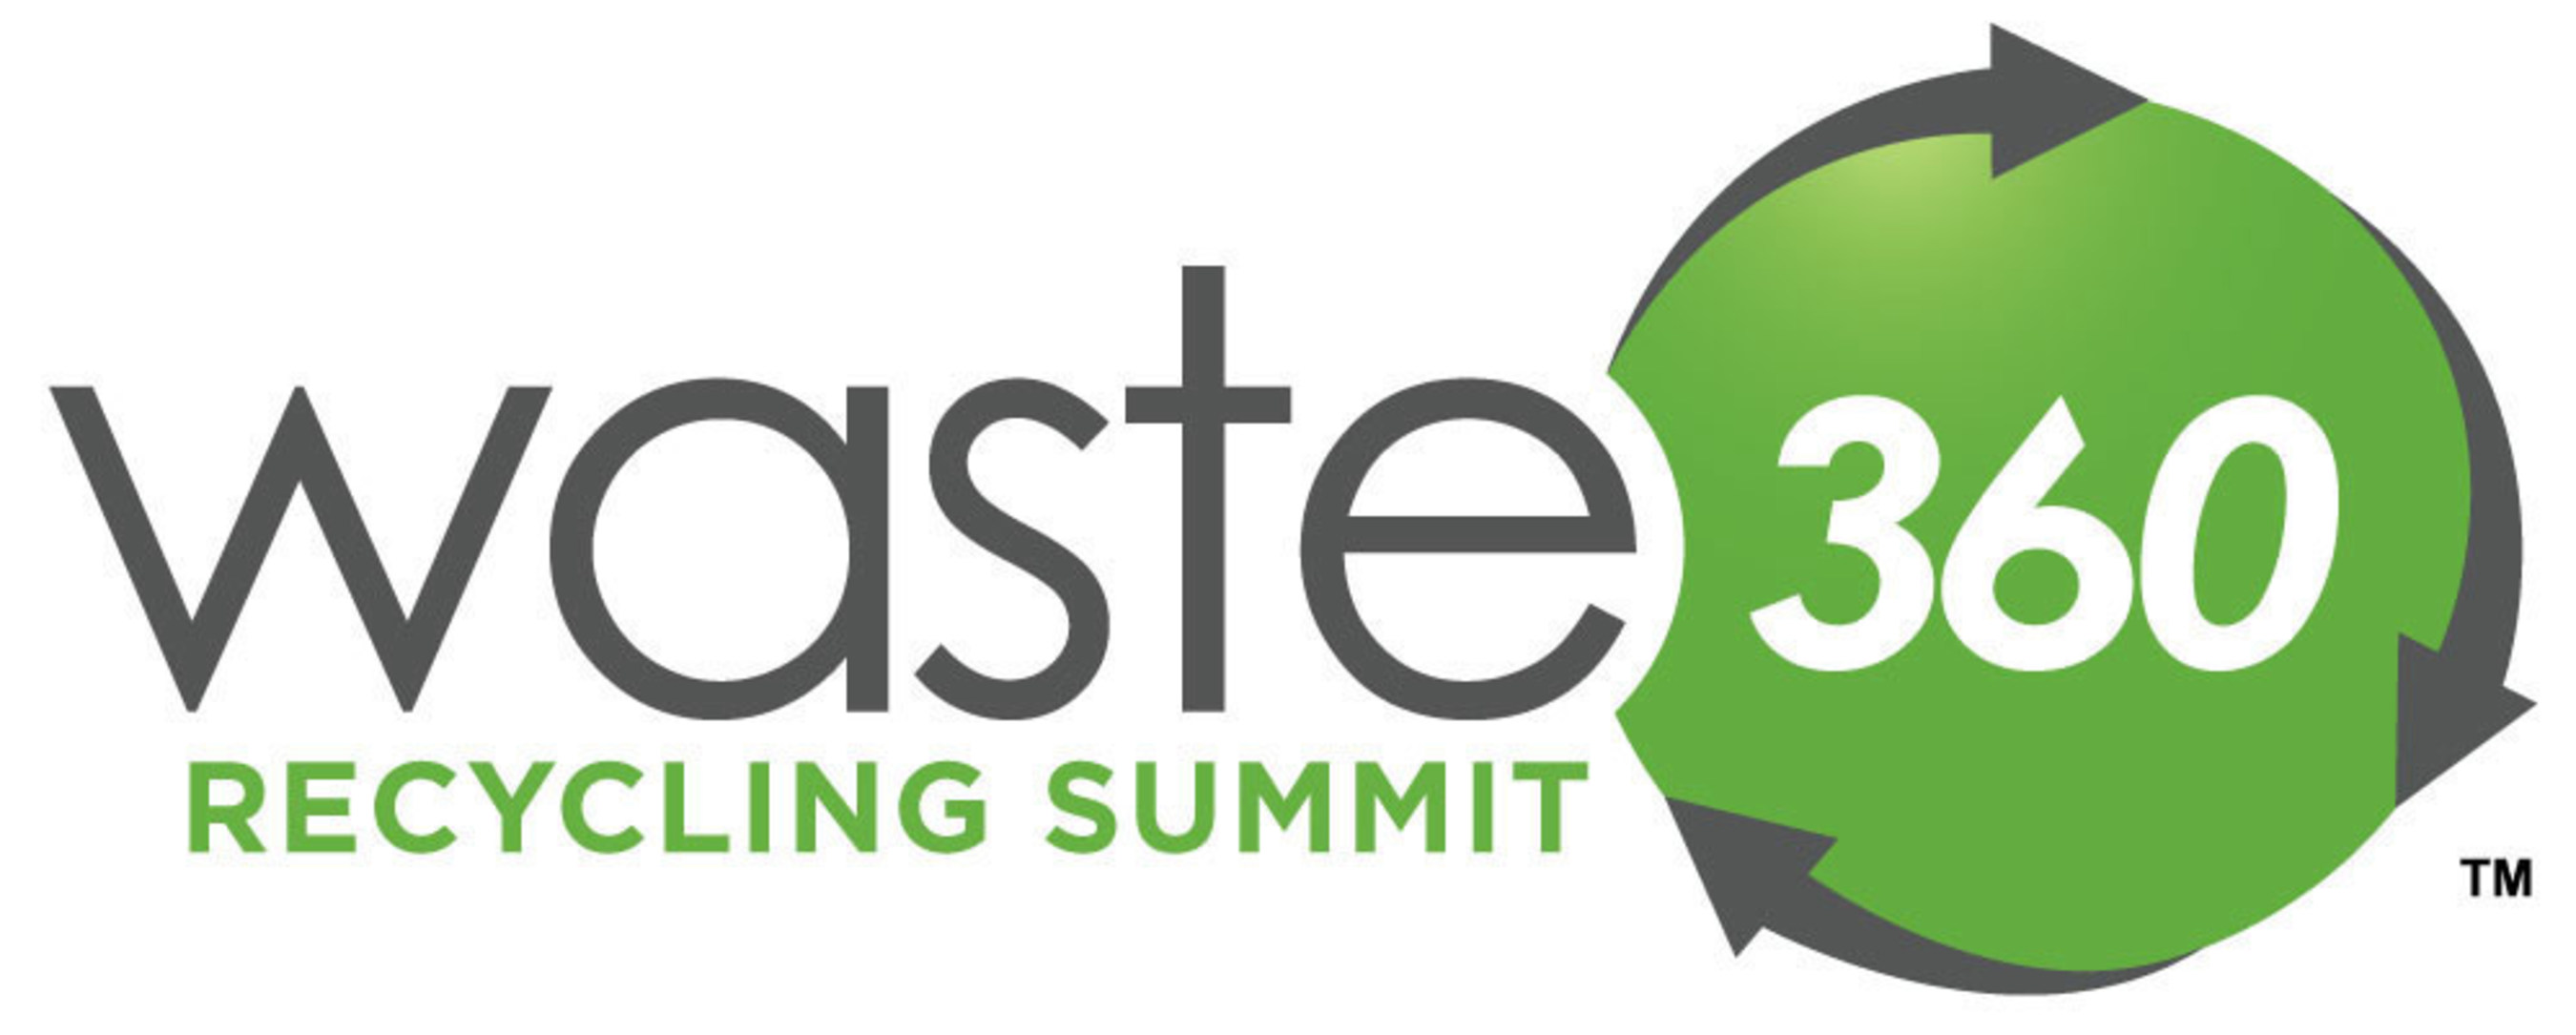 Penton's Waste360 Recycling Summit Examines the $500 Billion Global Recycling Industry